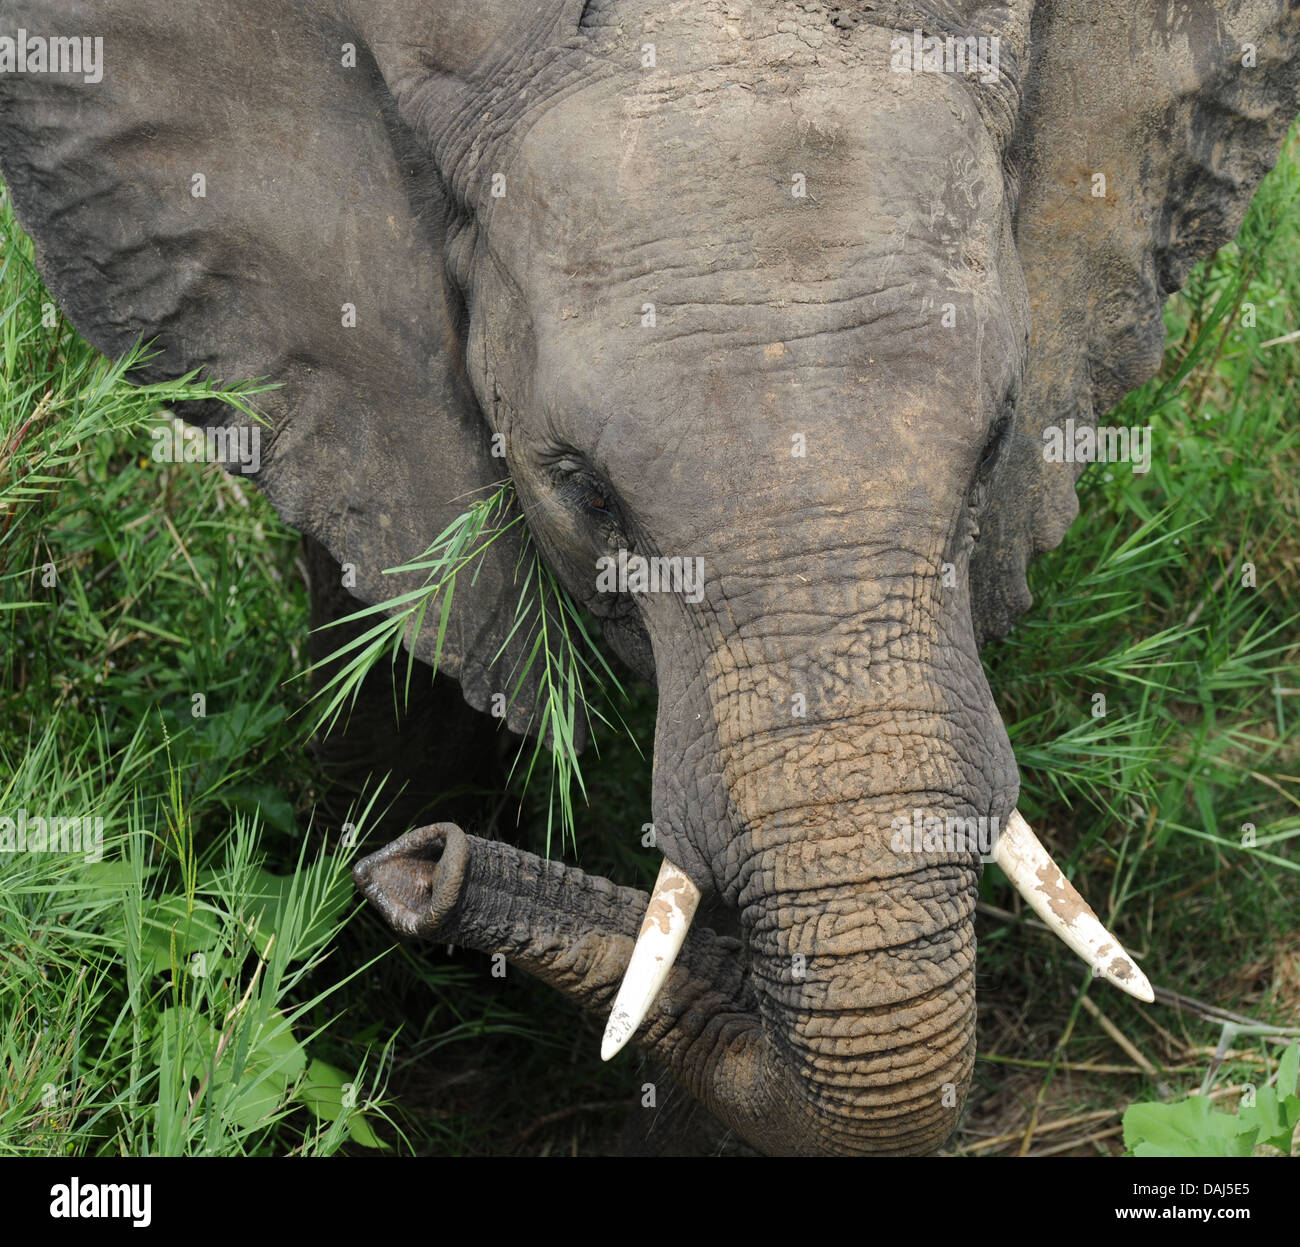 portrait young bull elephant in tall grass - Stock Image